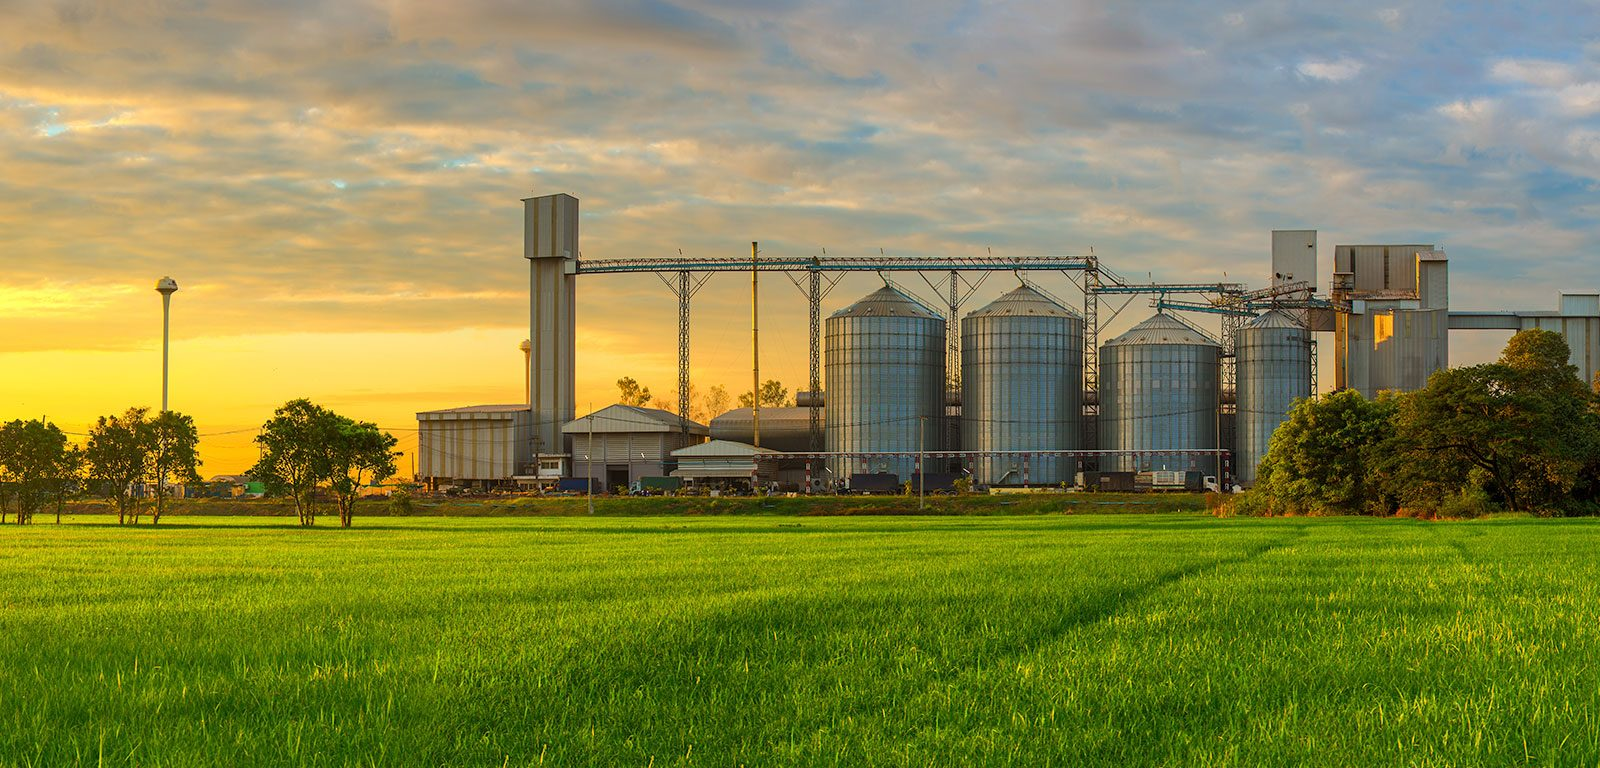 growing wheat field and grain silo at sunset